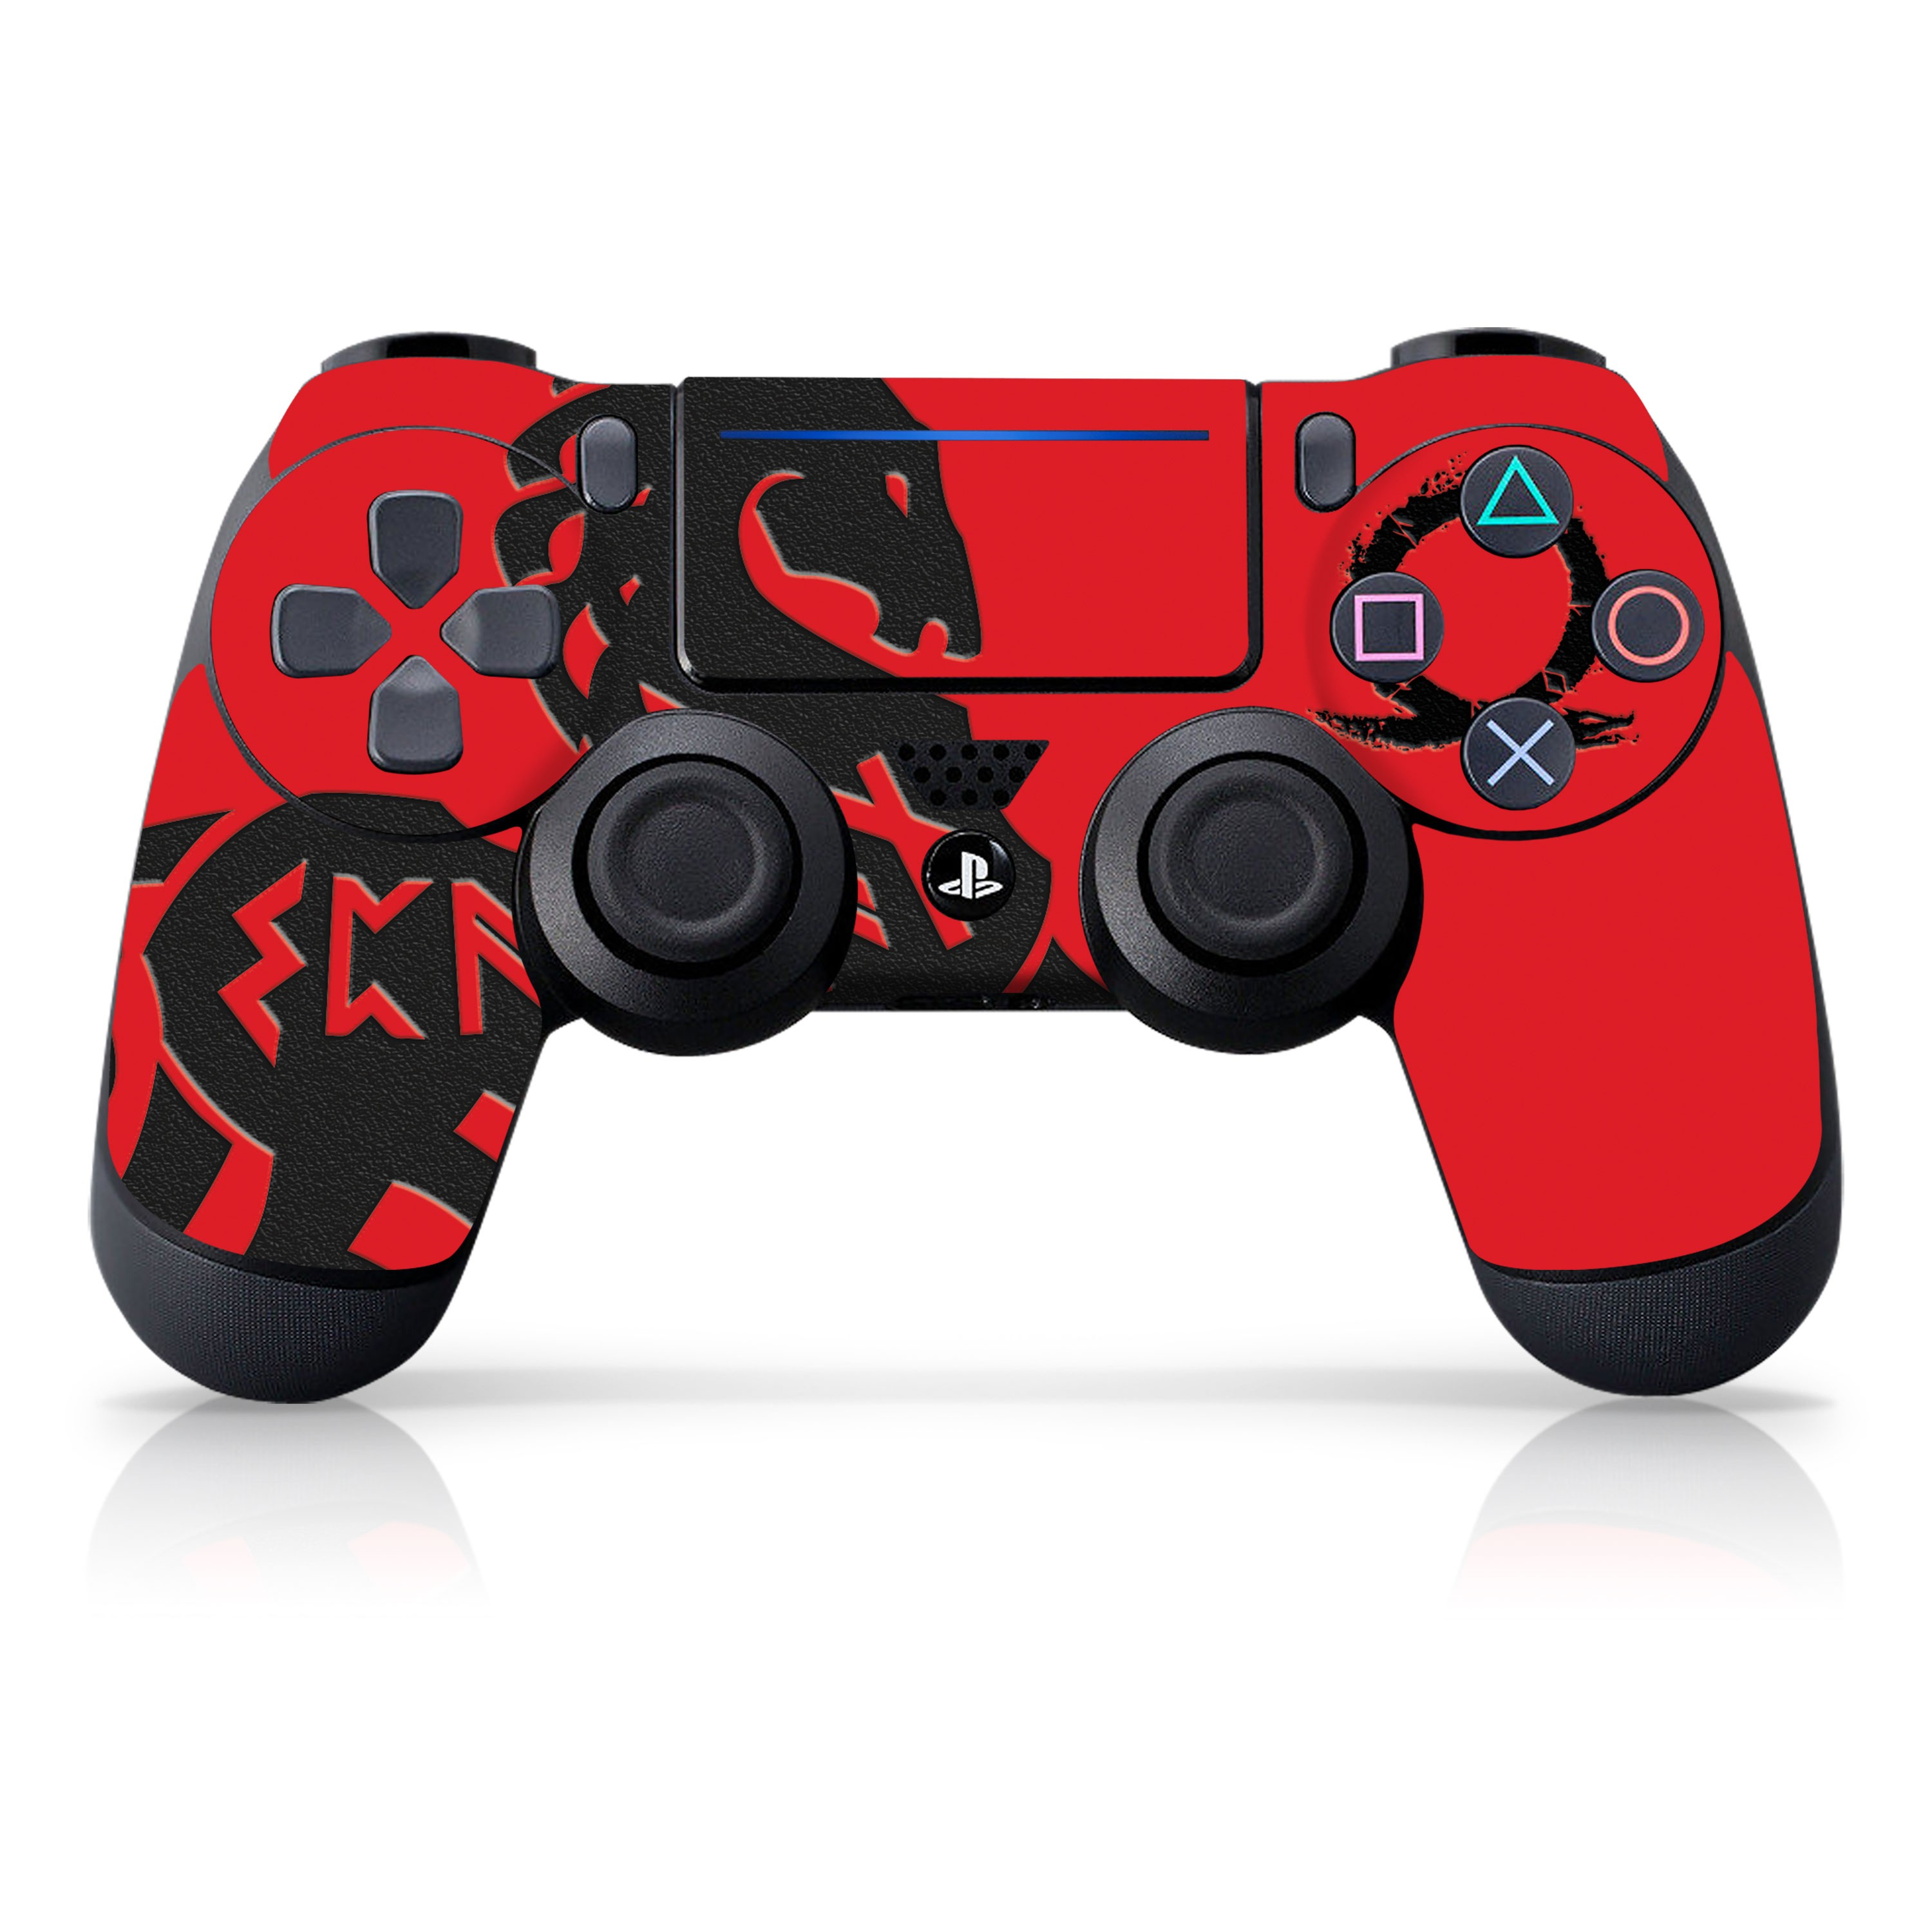 "Officially Licensed PlayStation 4 God of War DUALSHOCK 4 Wireless Controller Skin and Tech Decals ""Norse Horse"""